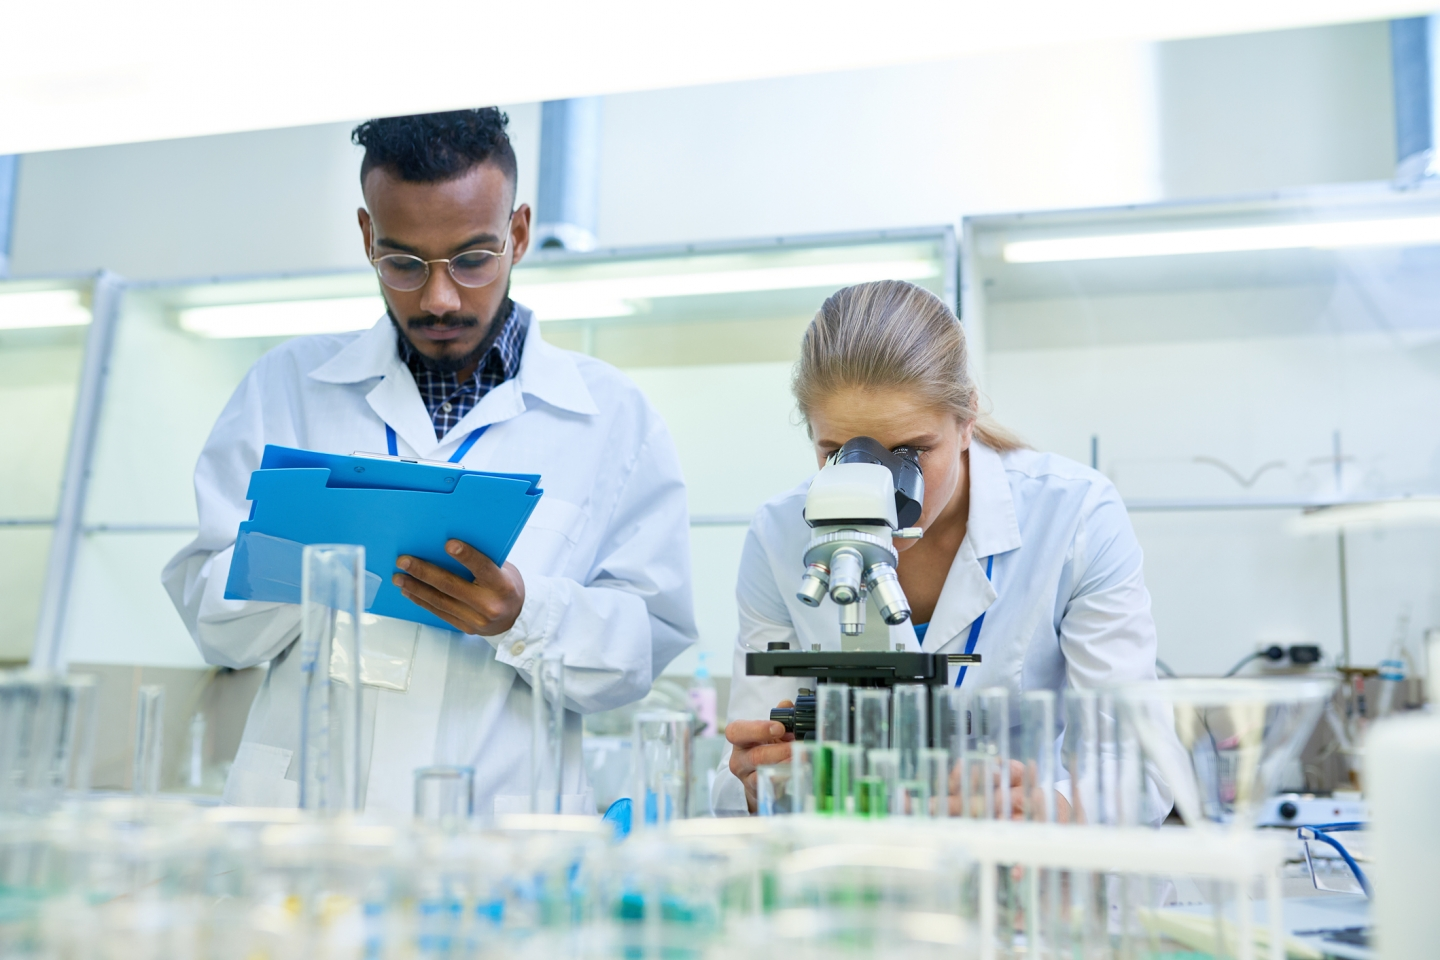 Researchers working in a lab